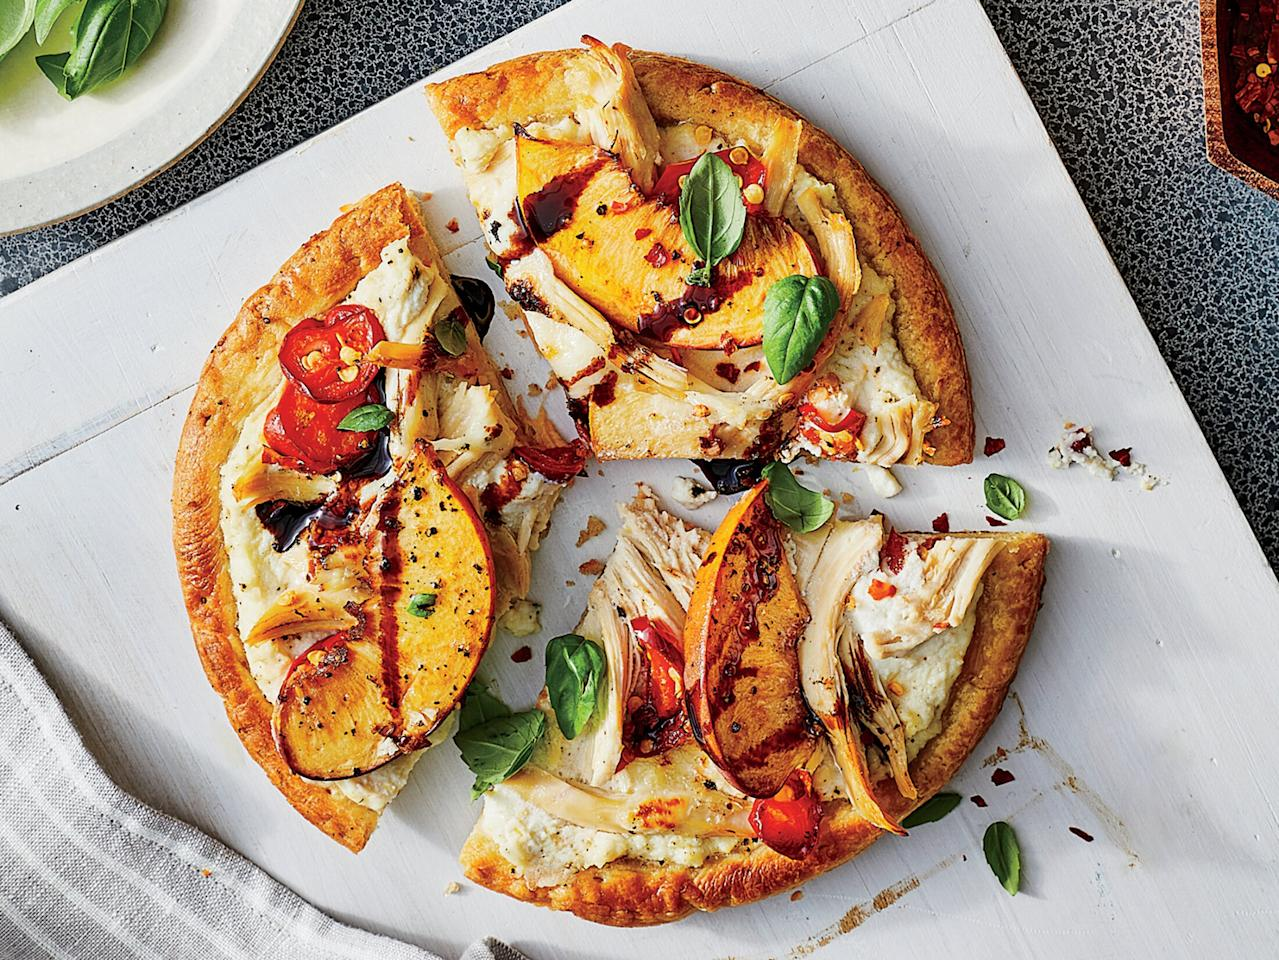 "<p>Premade pizza crusts are a lifesaver for the busy weeknight cook. Here they provide a filling base for these outside-the-box pizzas. To make your own balsamic glaze, simmer down 1/2 cup balsamic vinegar until thick and syrupy, about 5 minutes.</p> <p><a href=""https://www.myrecipes.com/recipe/chicken-and-peach-flatbreads"">Chicken and Peach Flatbreads Recipe</a></p>"